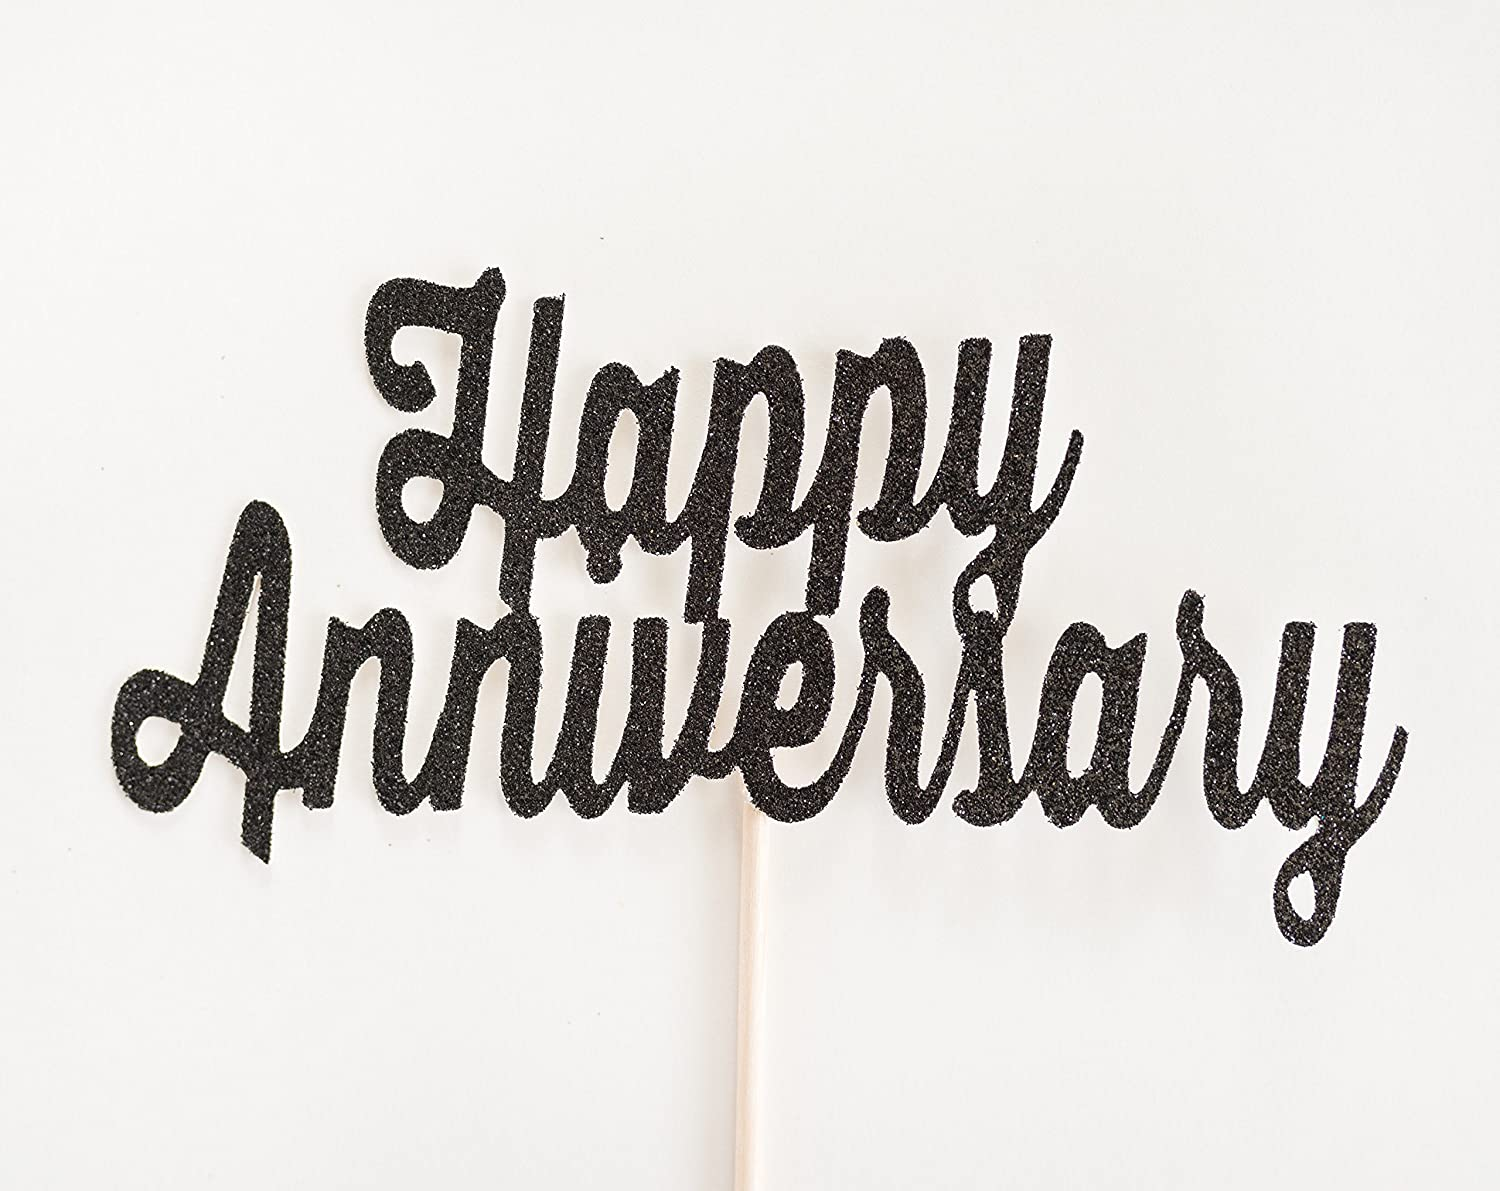 Black Glitter 'Happy Anniversary' Script Cake Topper, Wedding, Handwritten, Hand Writing, Celebration